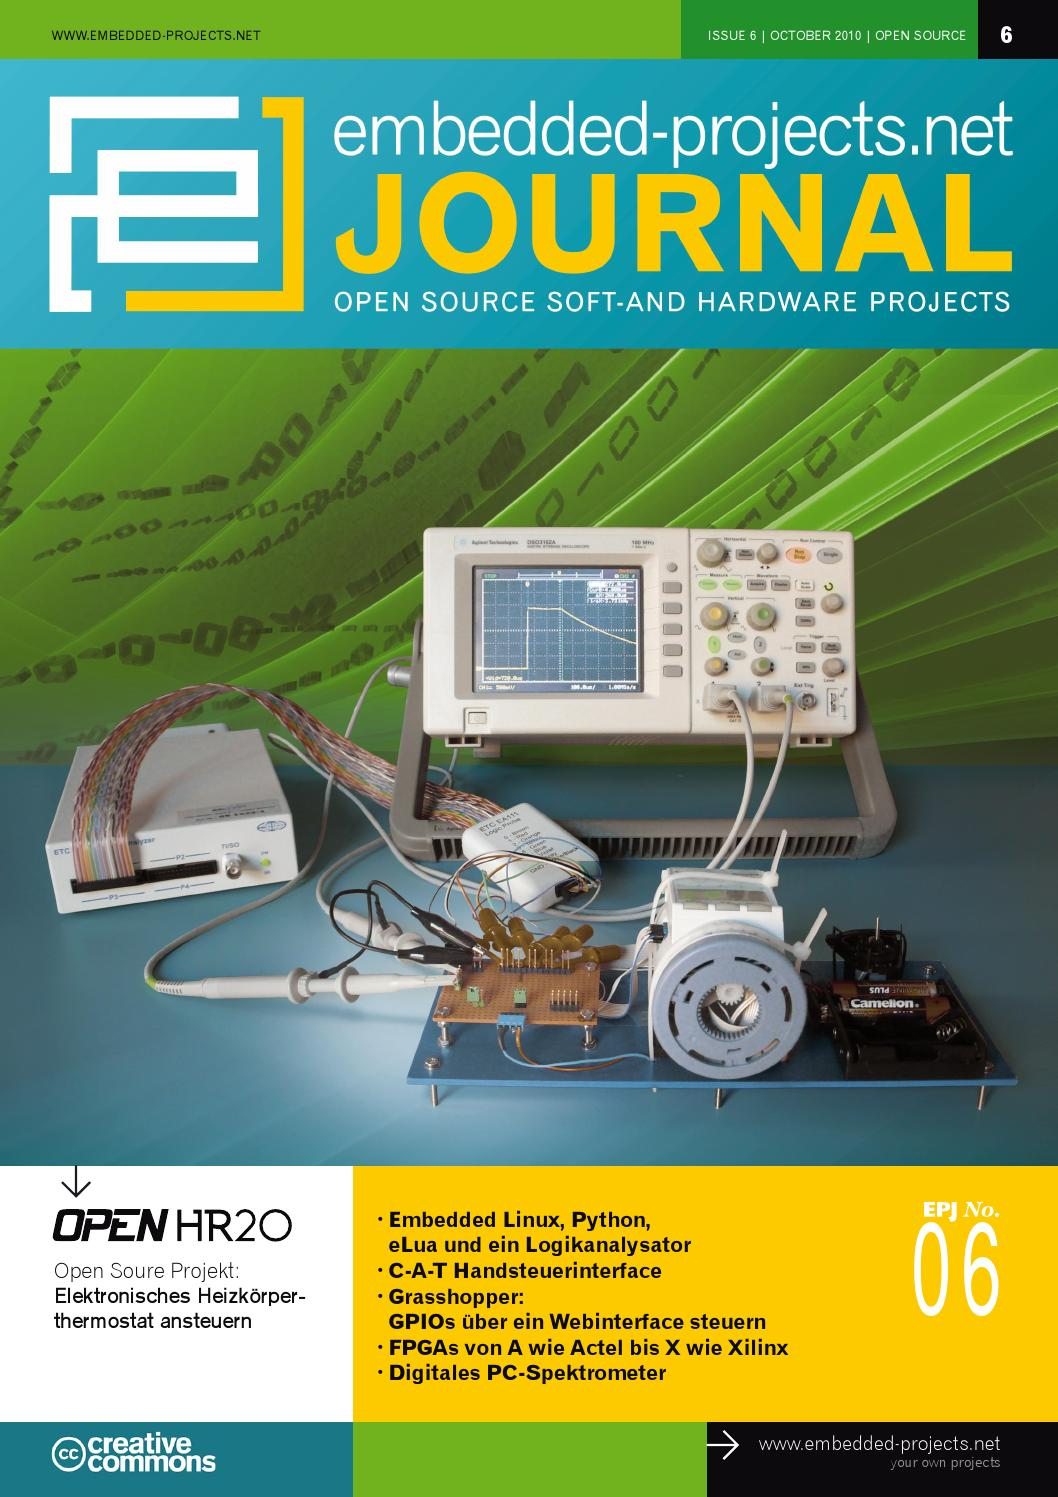 embedded projects Journal Ausgabe 6 by embedded projects GmbH - issuu